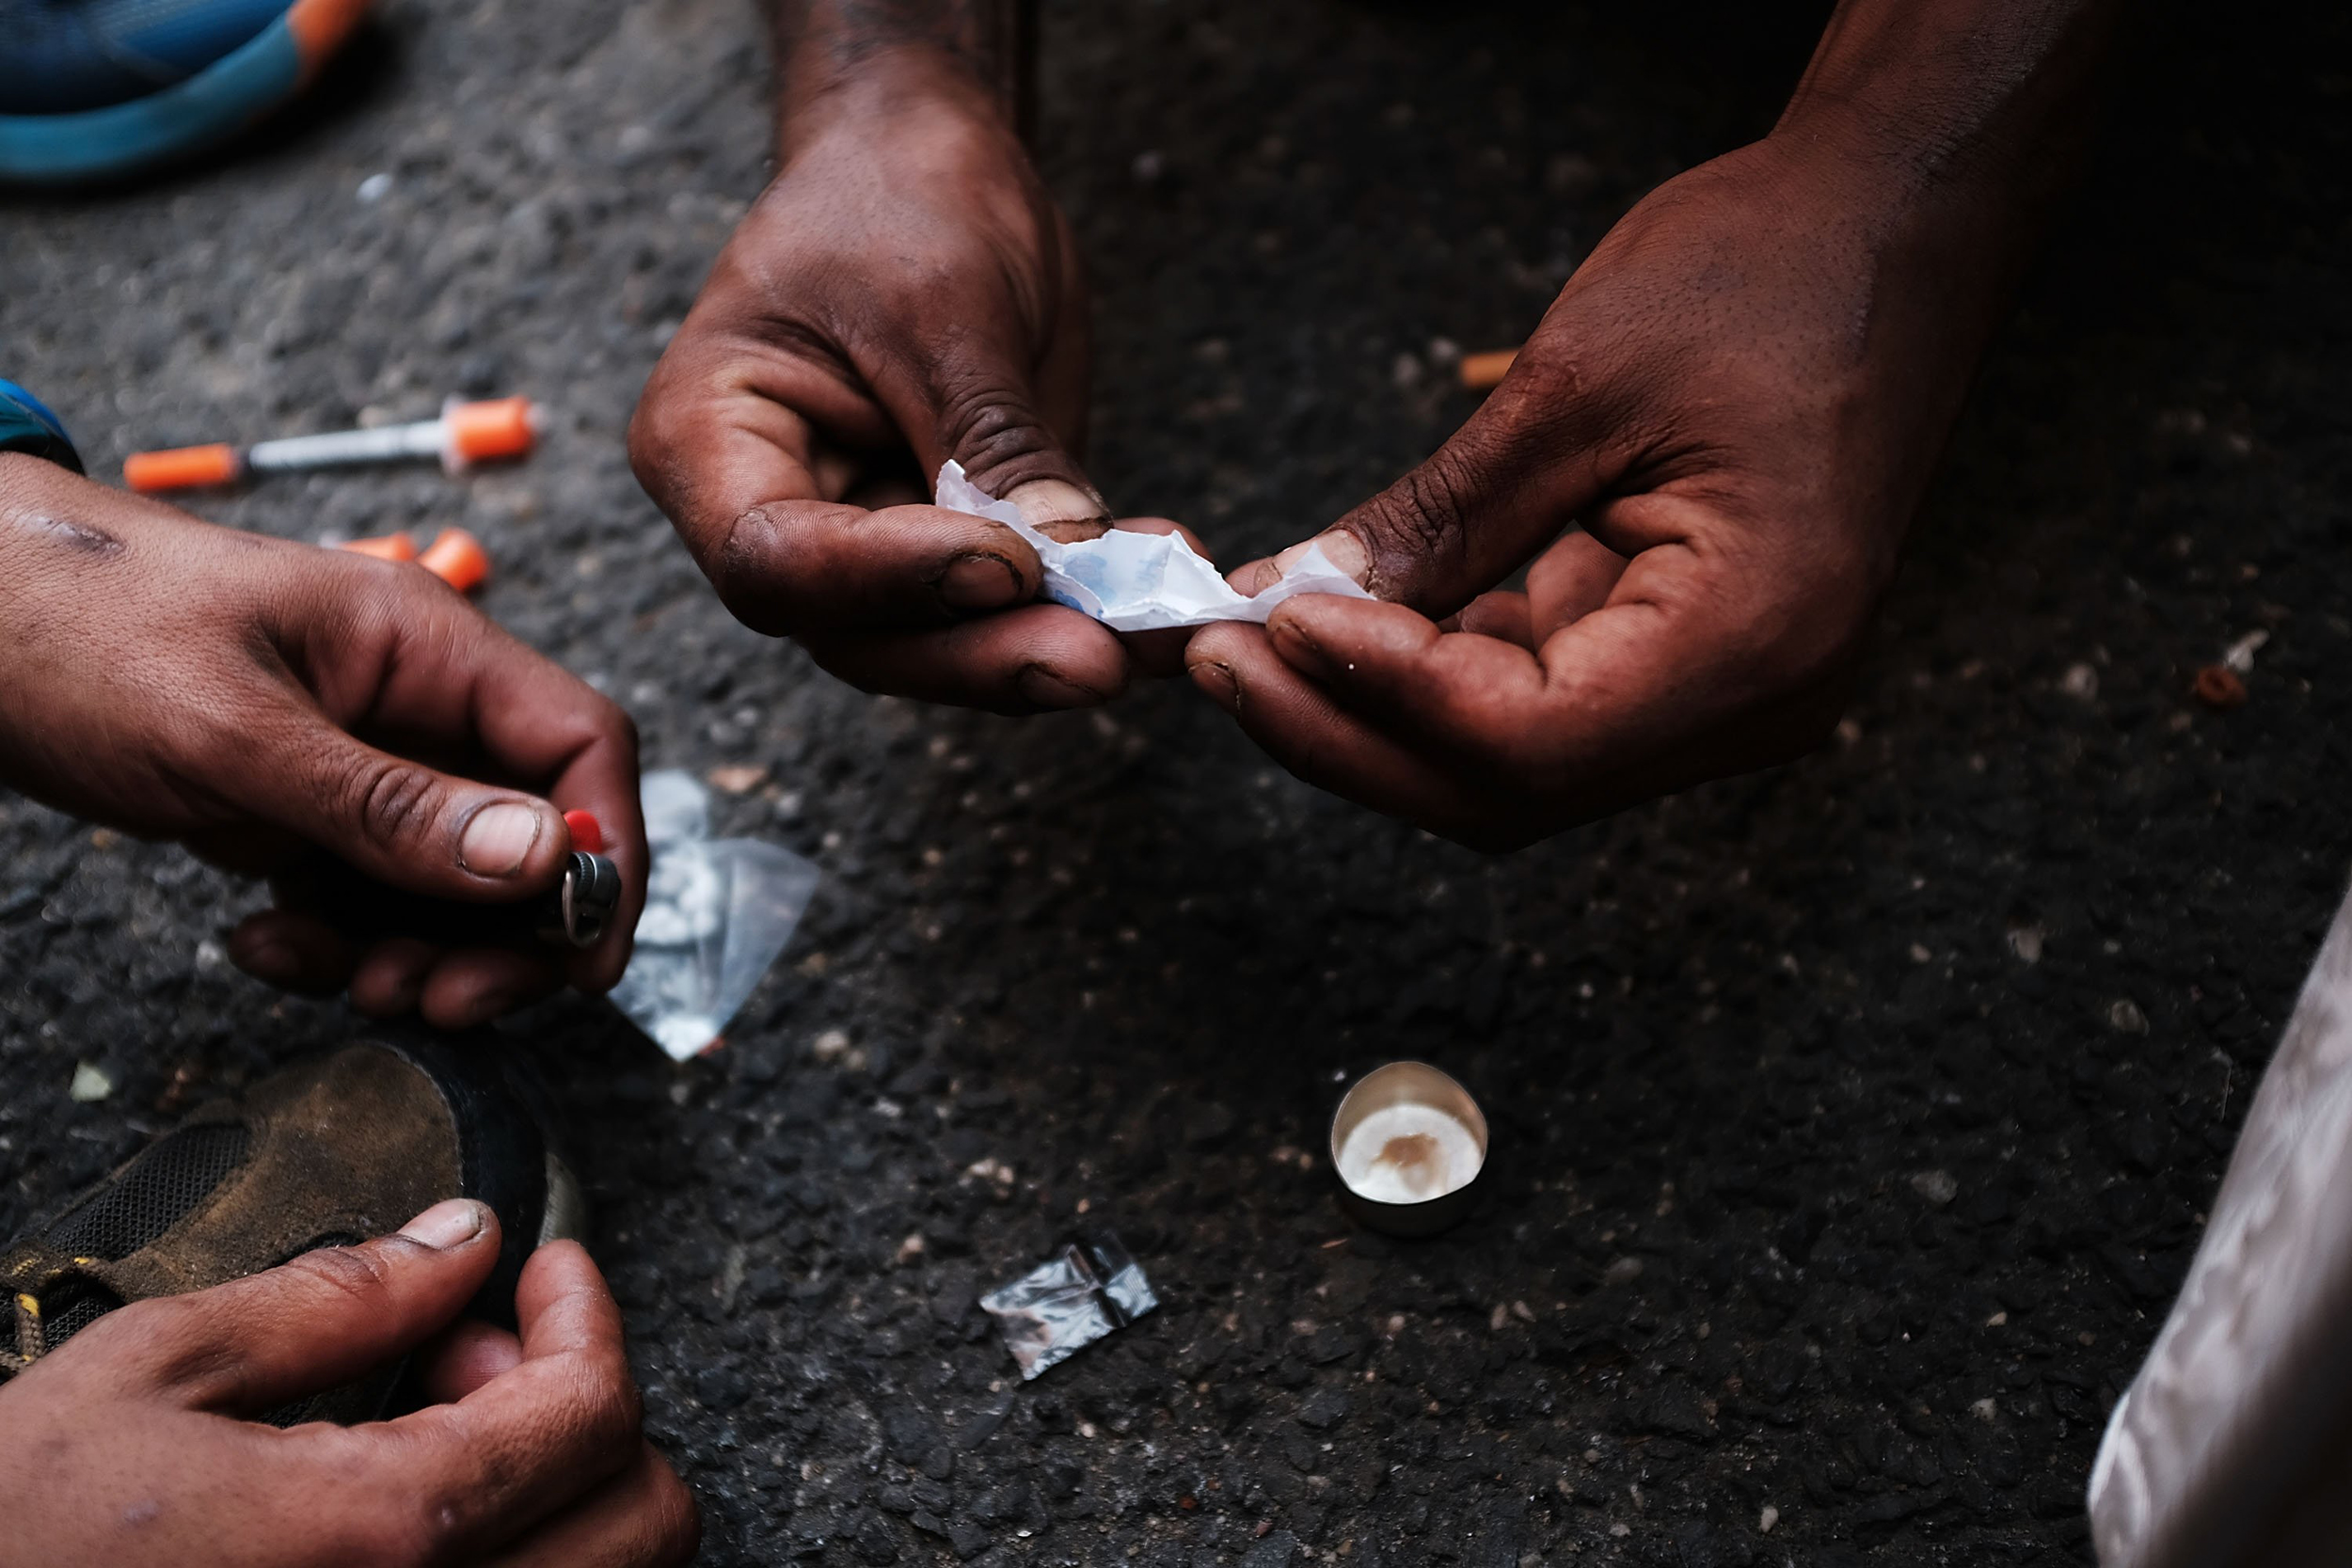 Image: Heroin users prepare to shoot up on the street in a South Bronx neighborhood